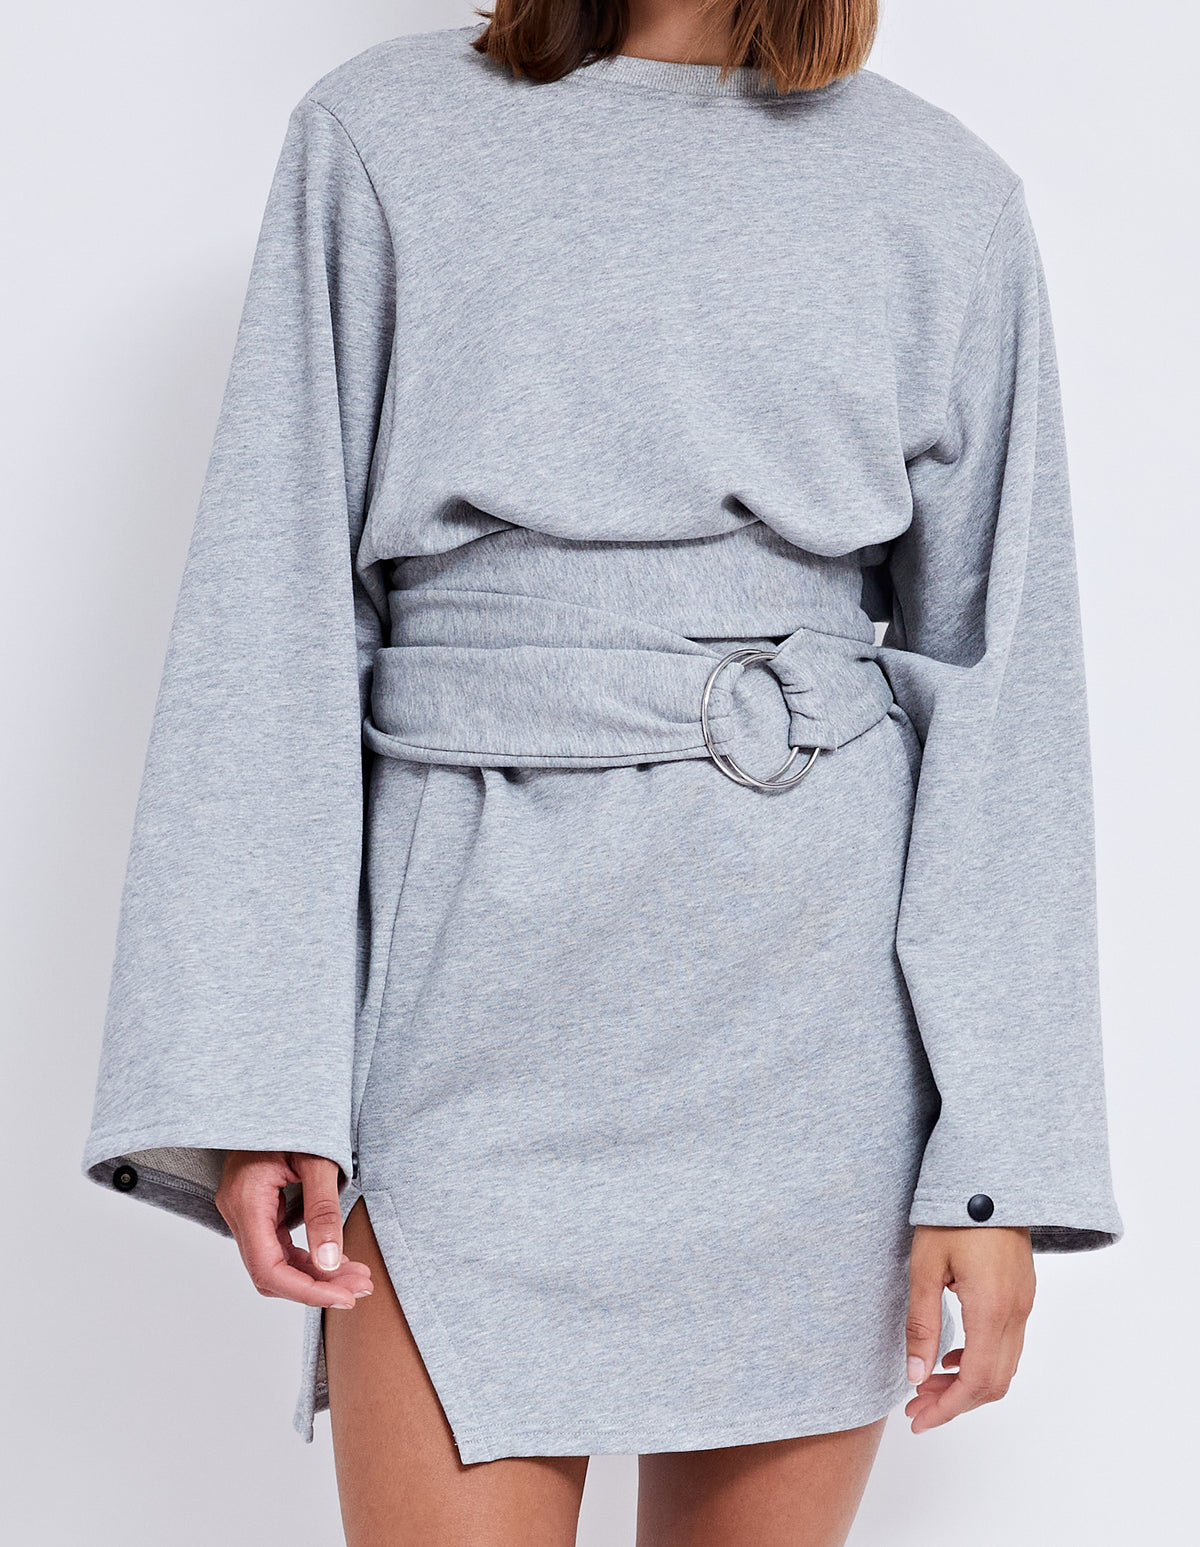 THE KEYS SWEATER DRESS | GREY MARLE